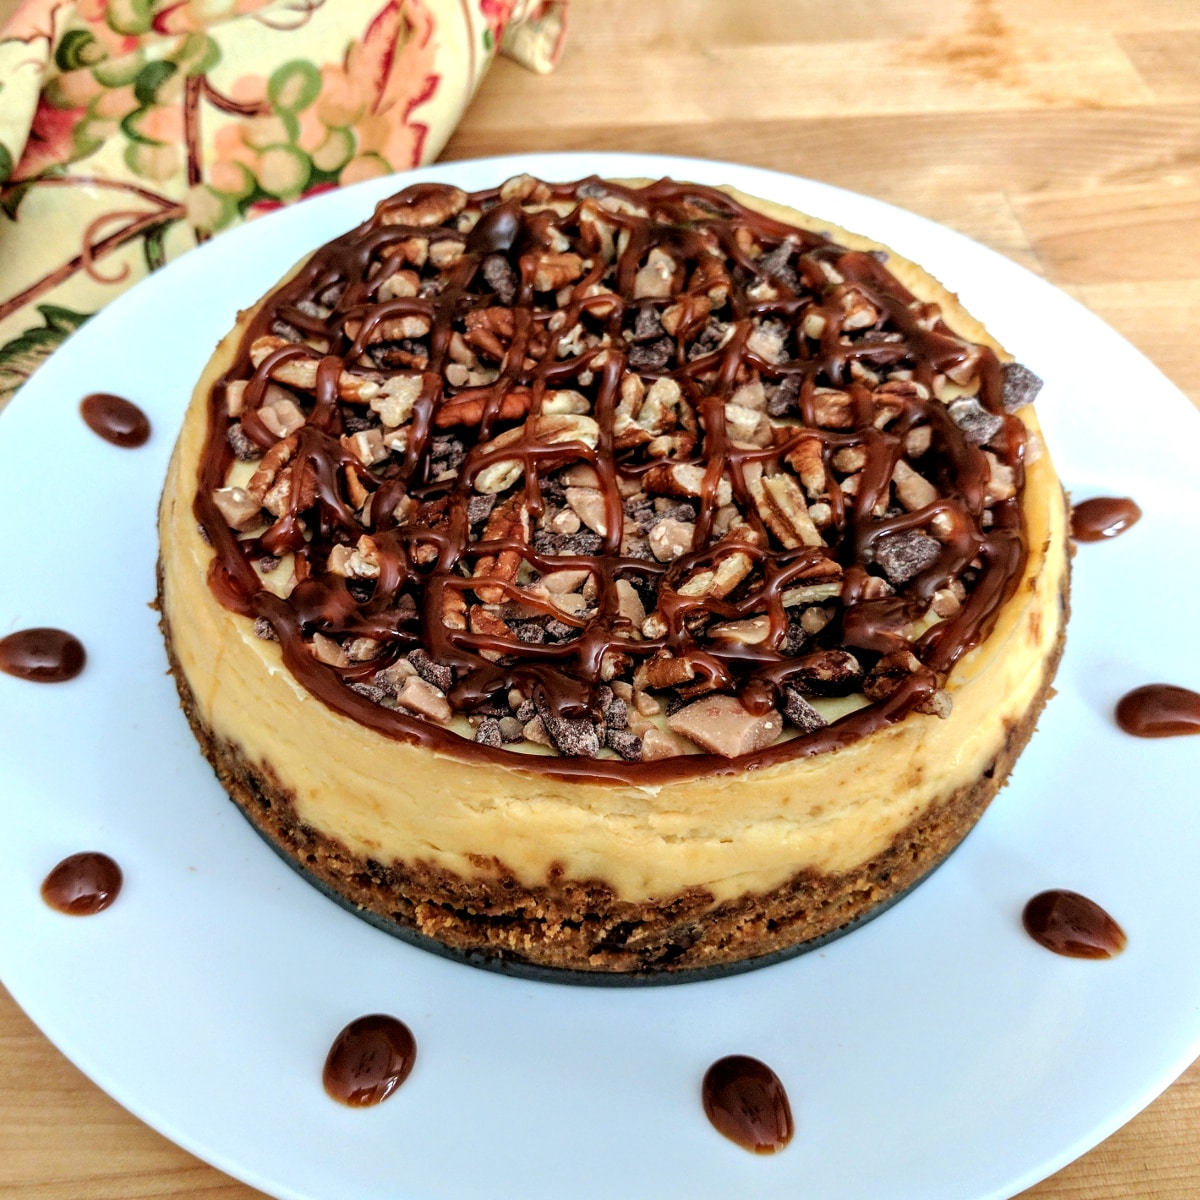 Instant Pot Cheesecake with toffee, chocolate, caramel and pecans on a white plate.